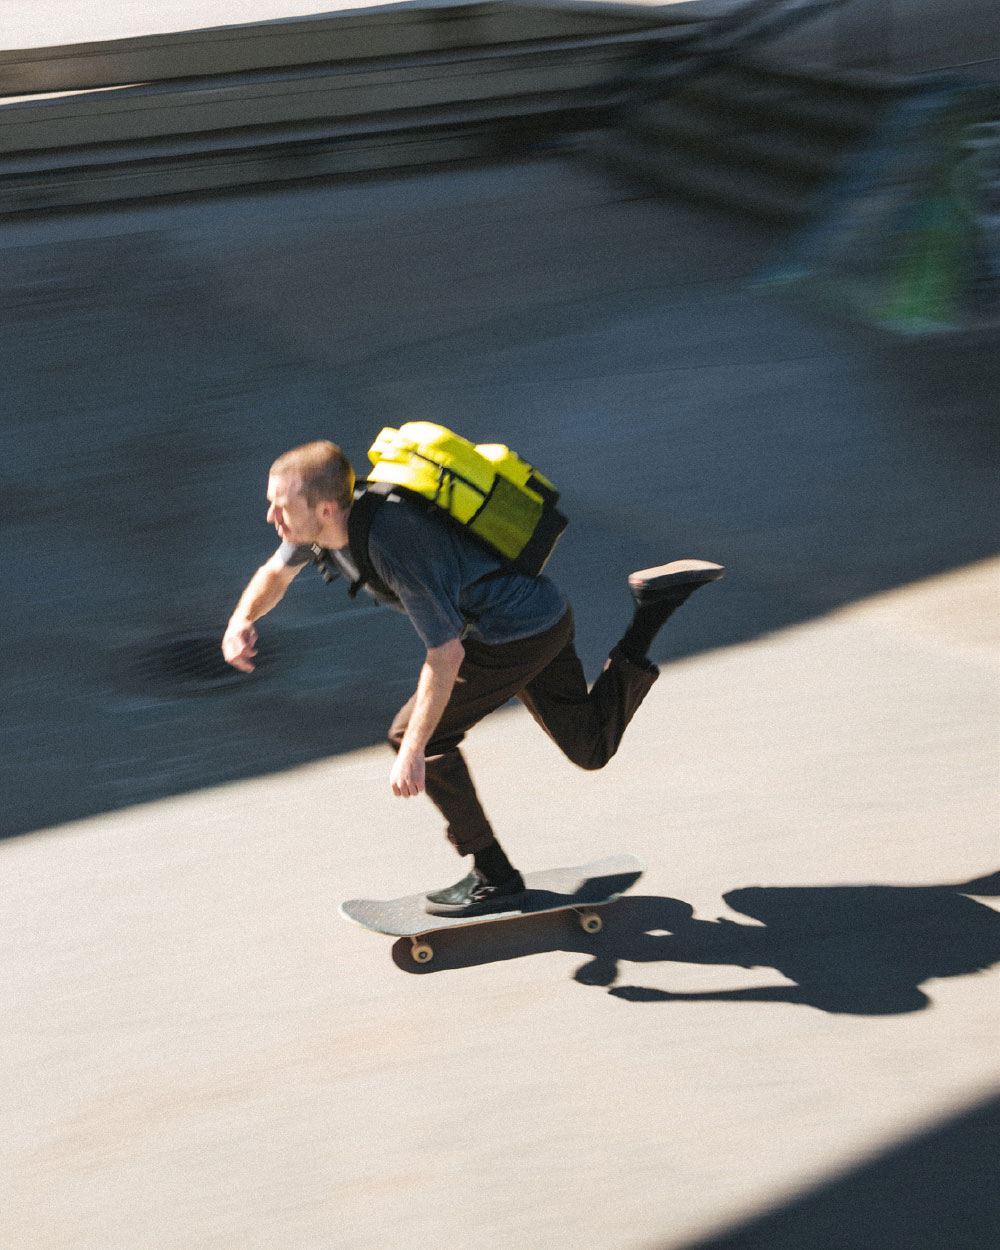 man skateboarding with yellow insulated miller backpack on